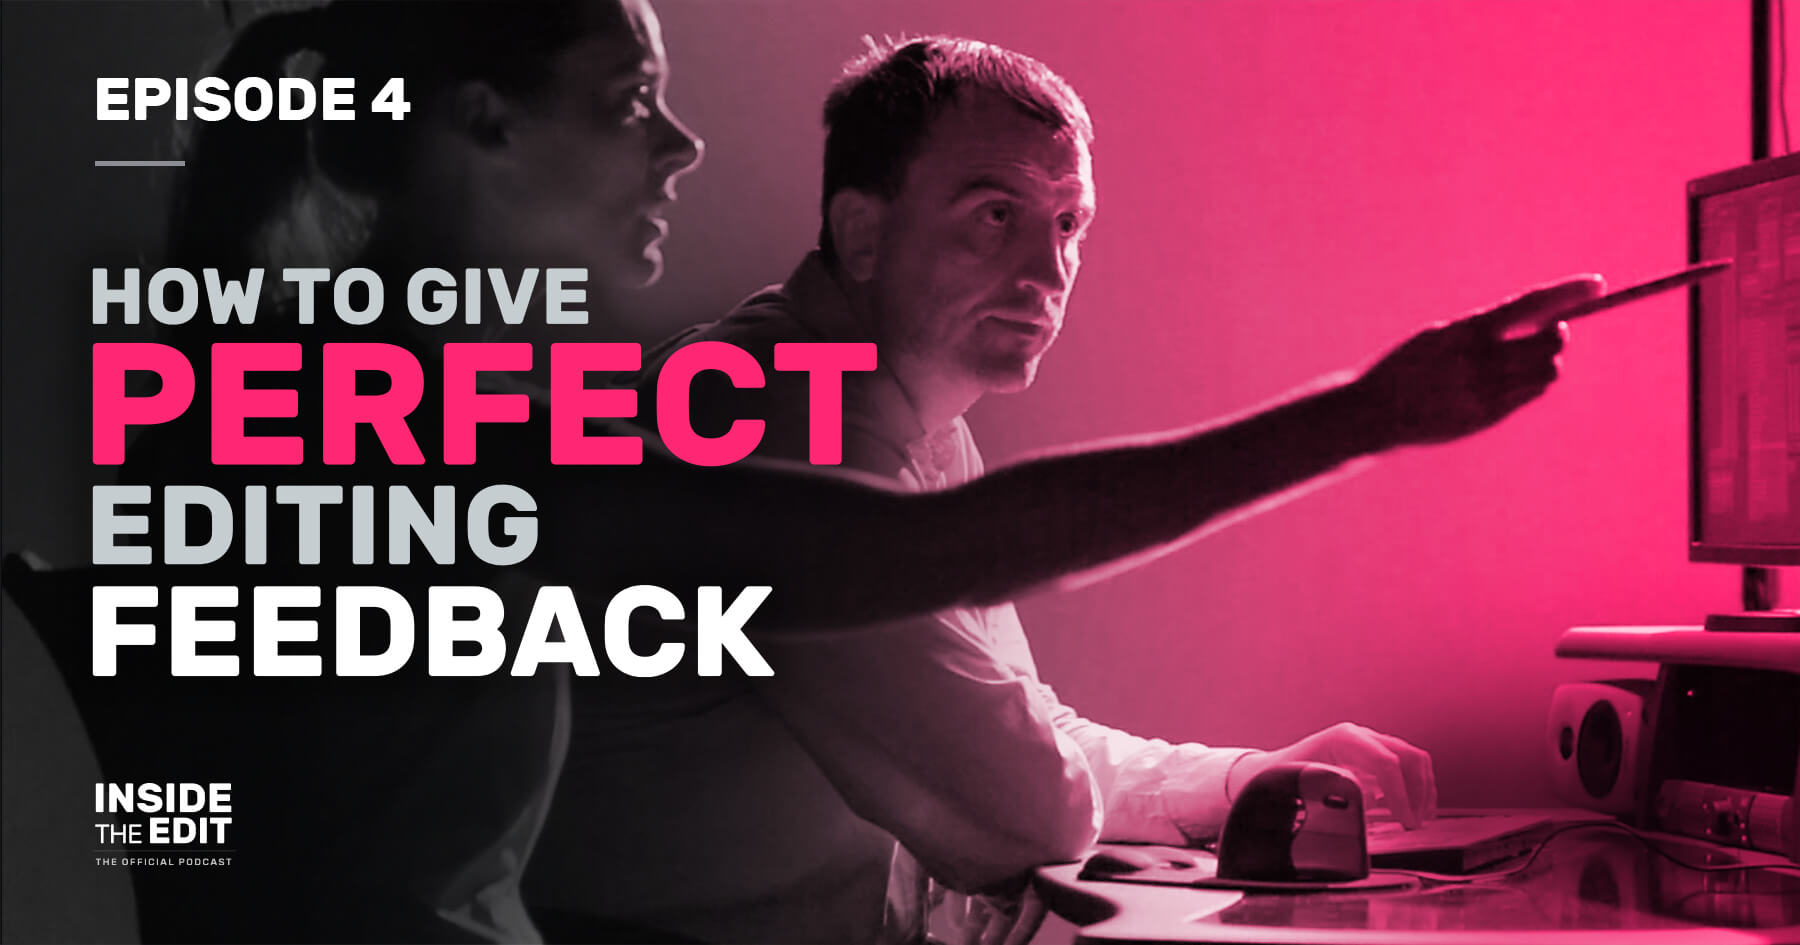 How To Give Perfect Editing Feedback